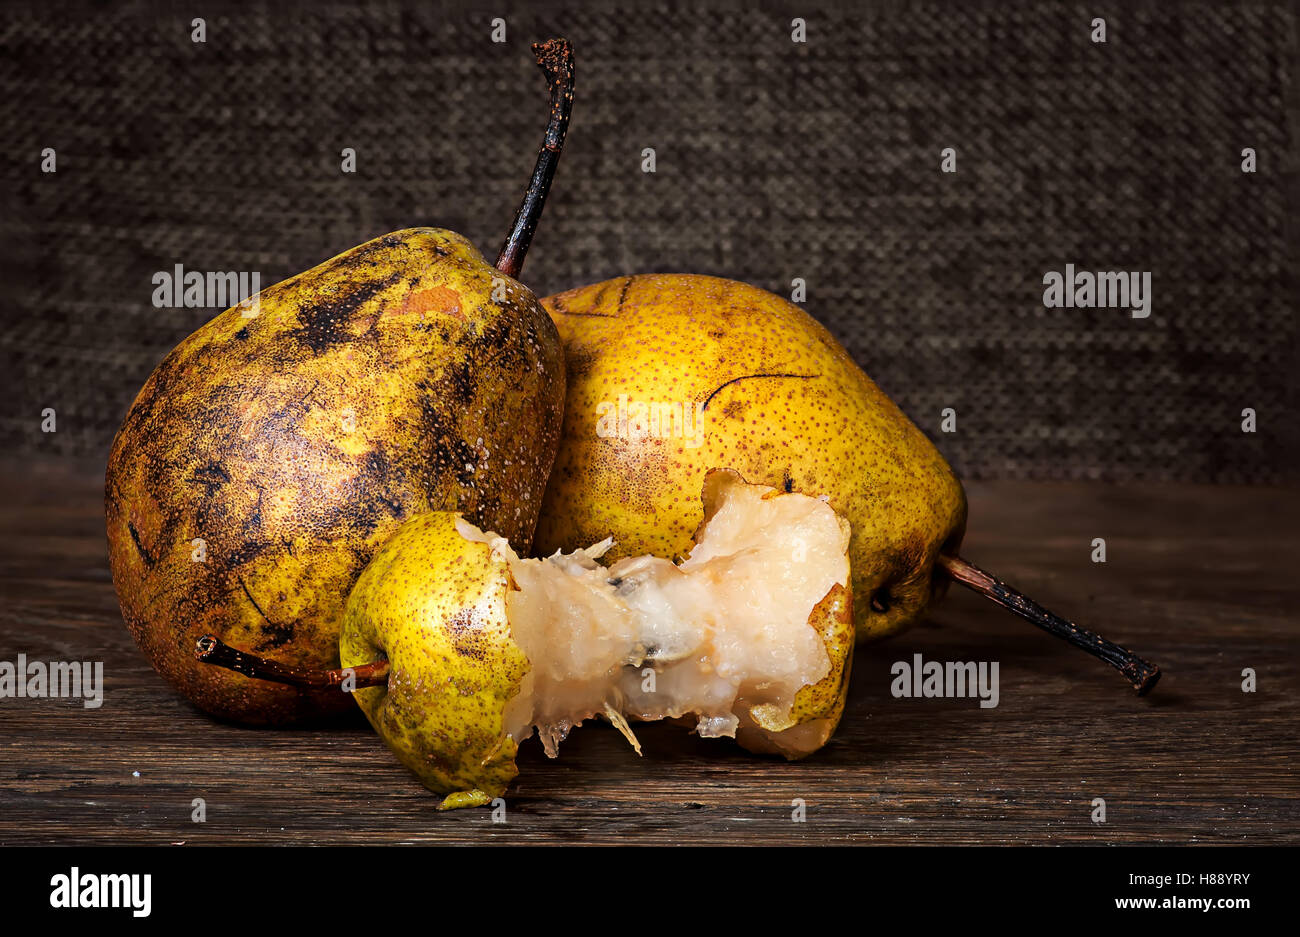 Two pears and stub on wooden table background sacking - Stock Image